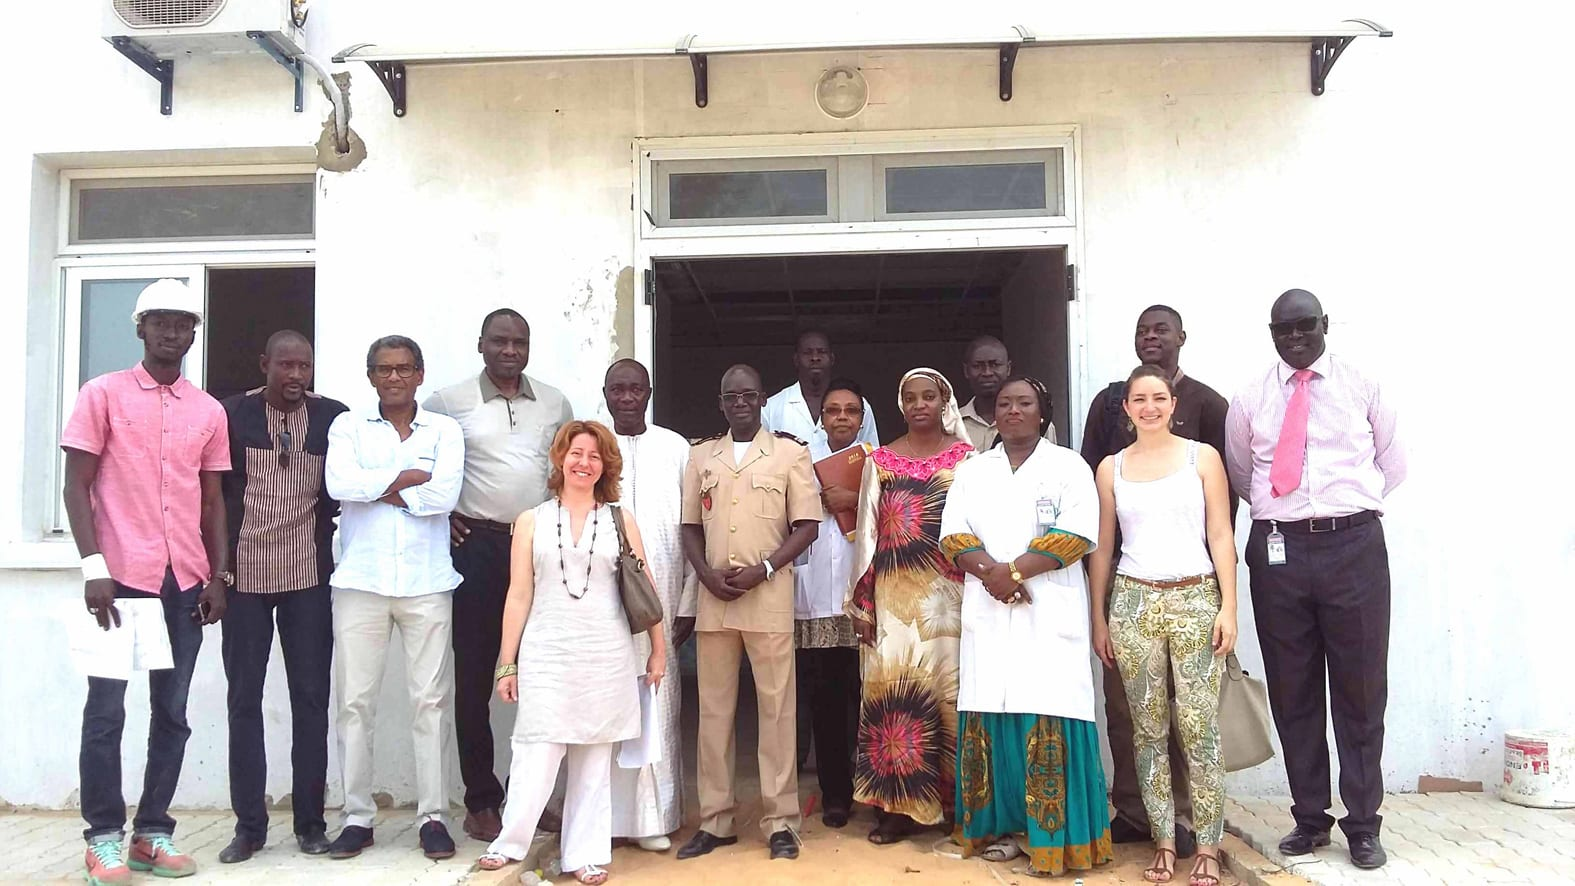 Site visit to the paediatric unit SCD funded by the Government of Monaco in Dakar. Photo: ©DCI